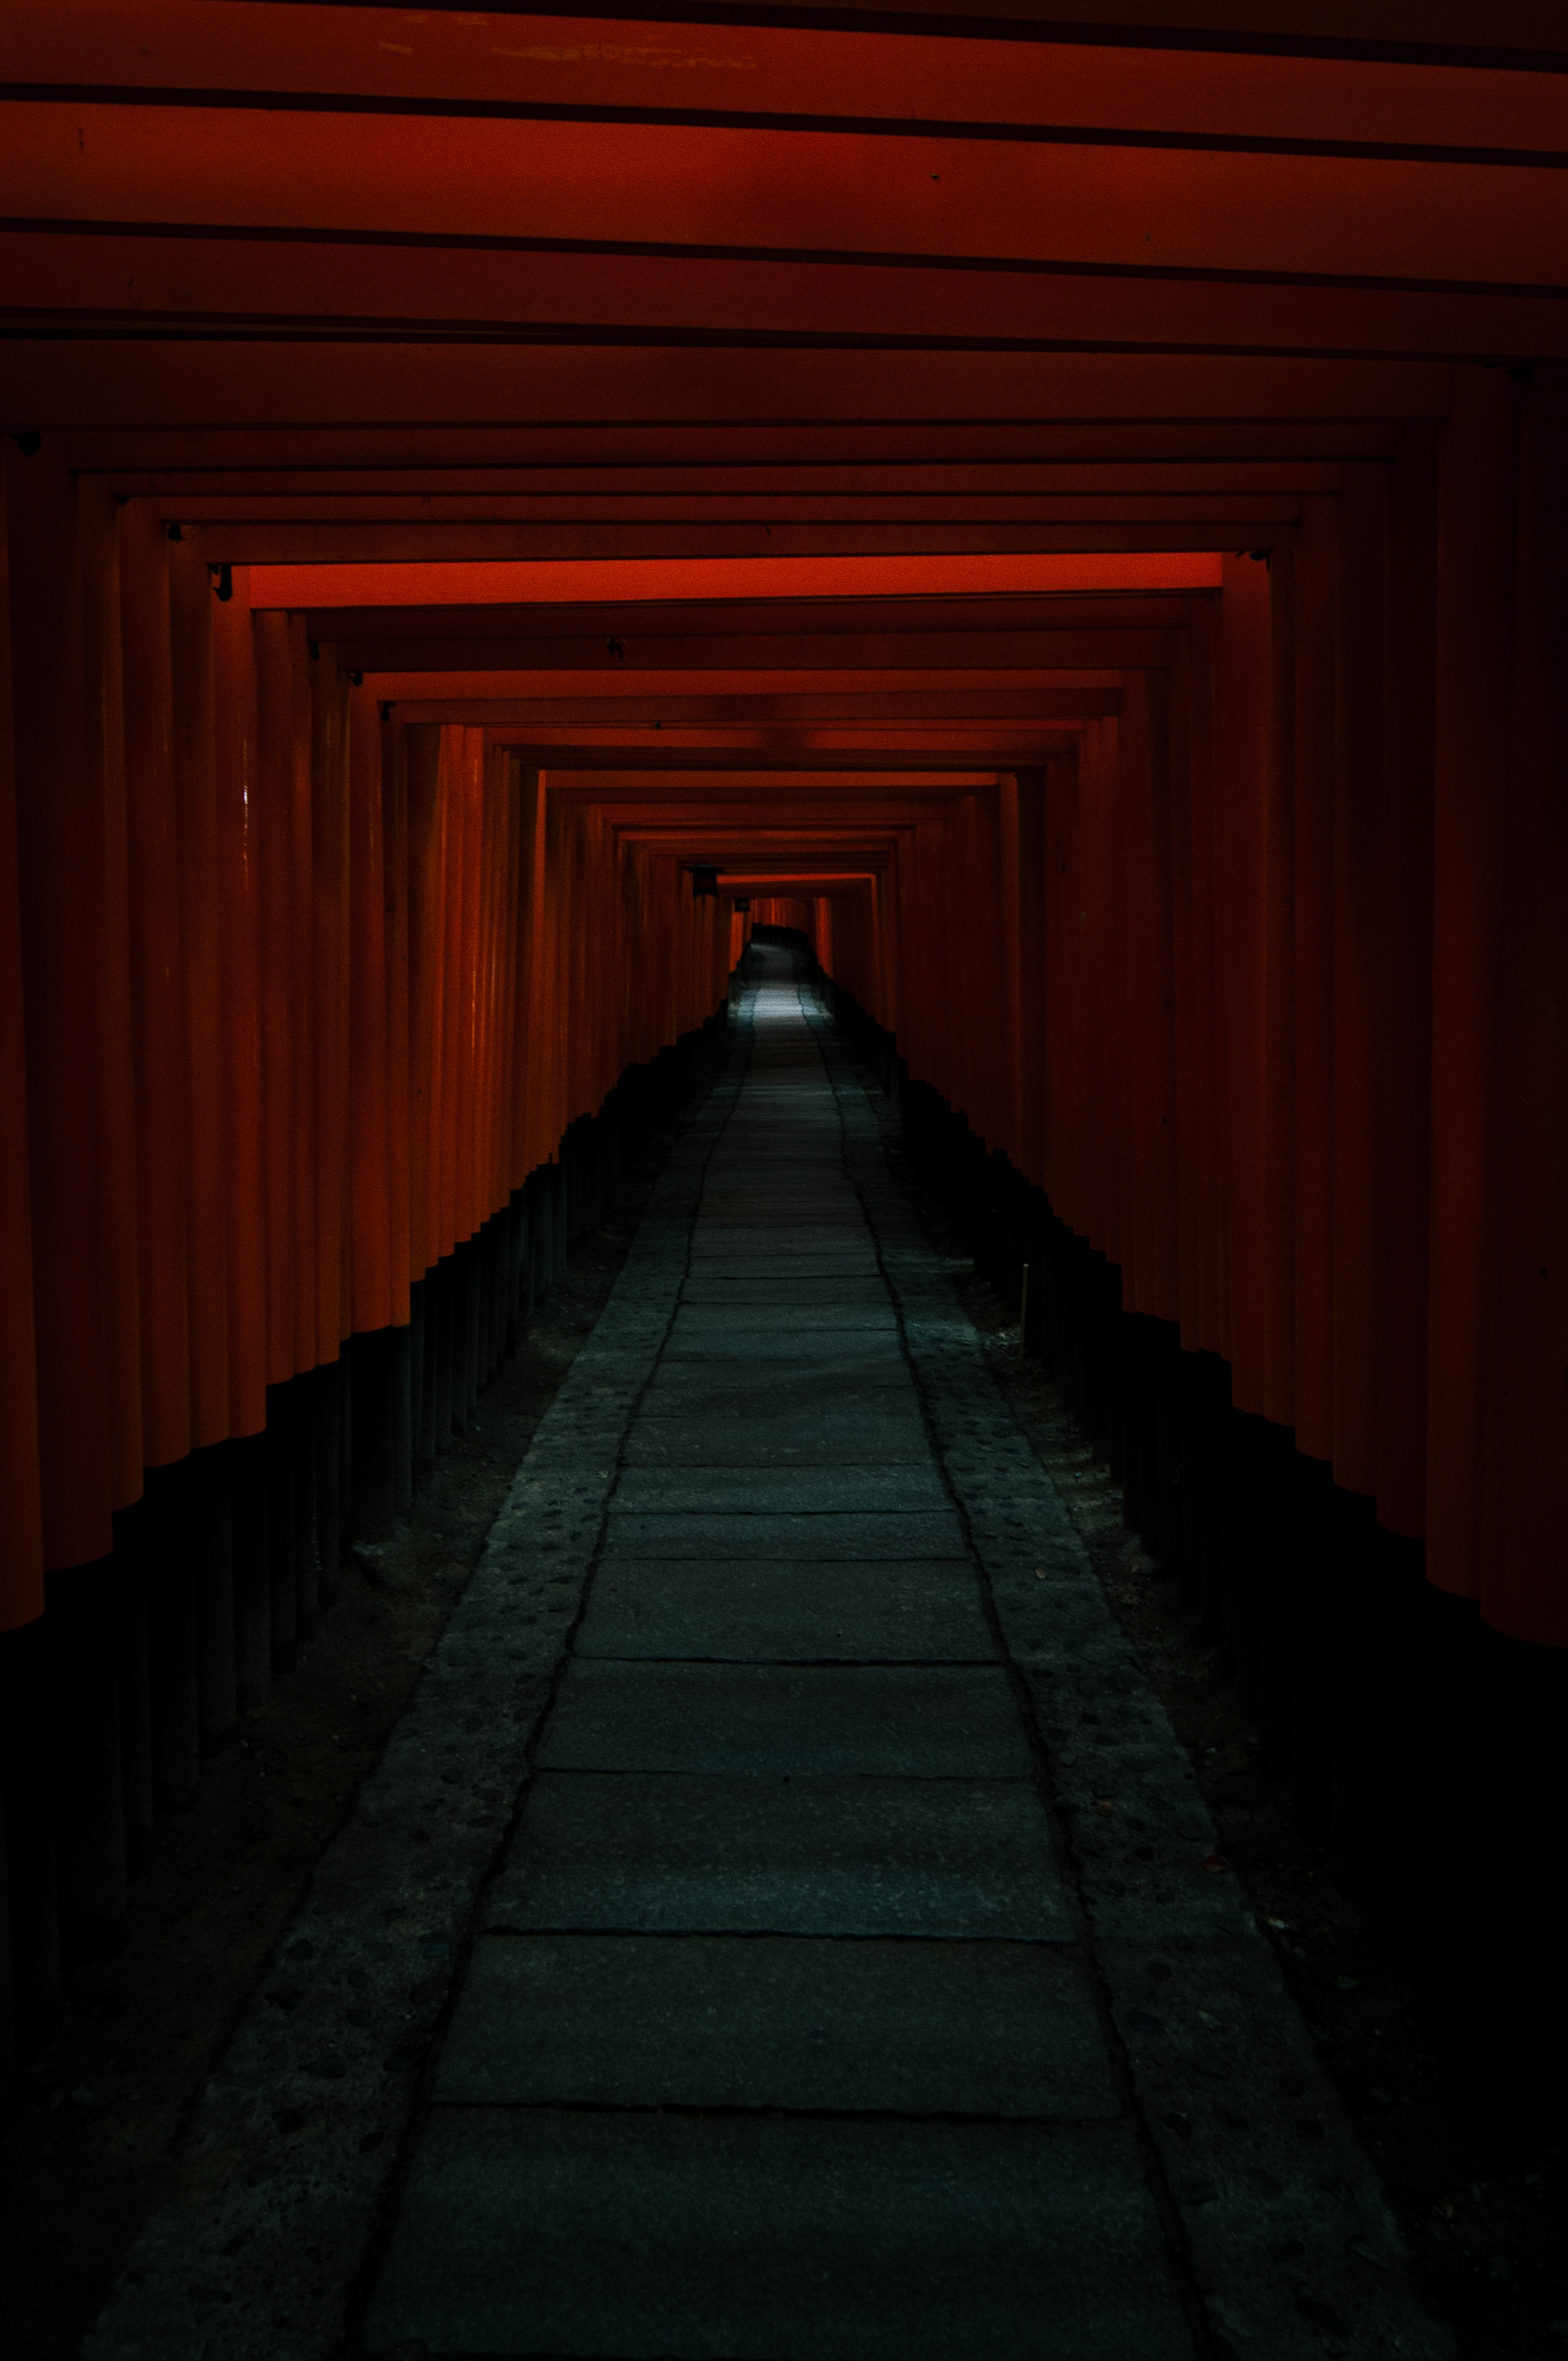 52411 free download Red wallpapers for phone, Dark, Tunnel, Passage Red images and screensavers for mobile